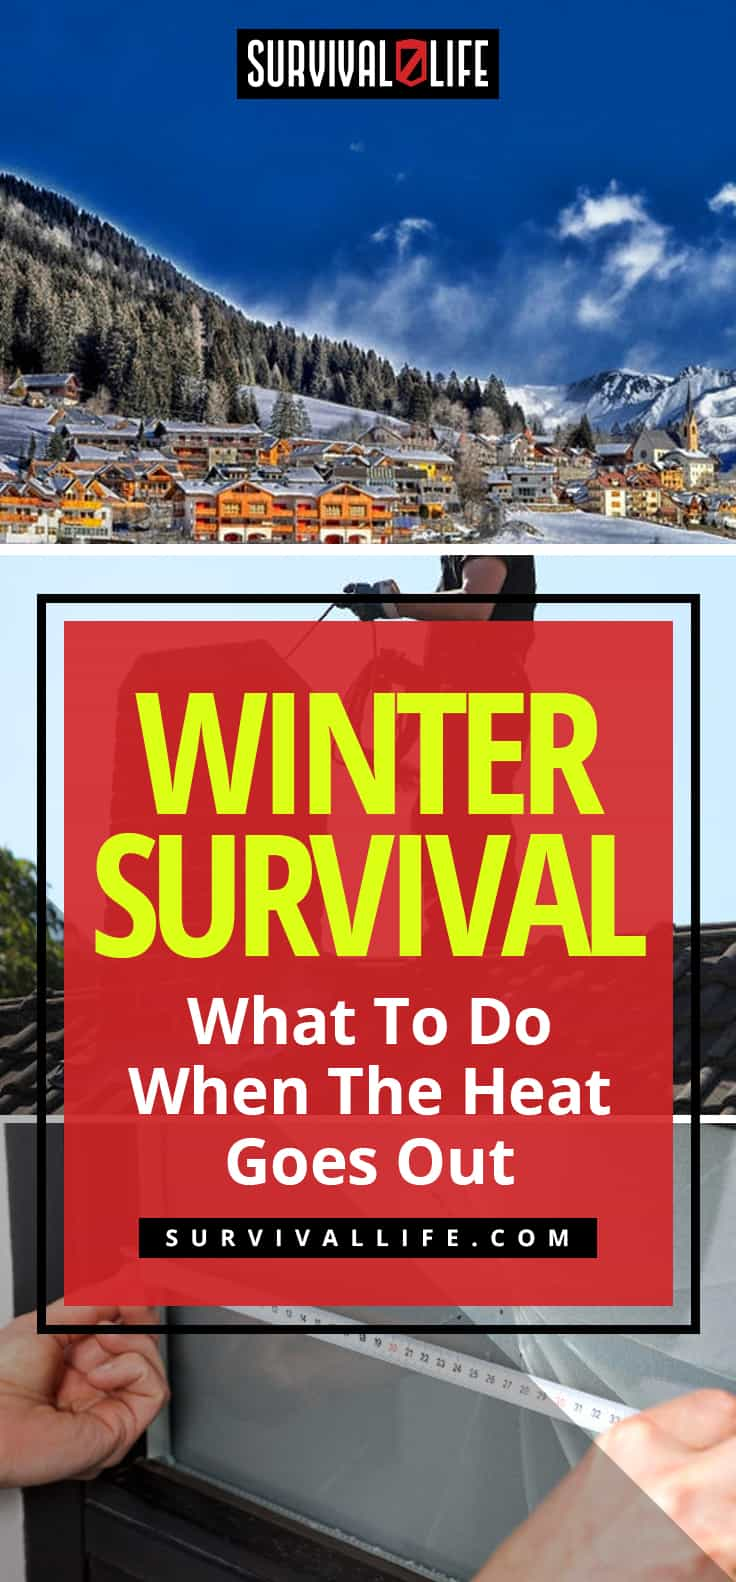 Placard | Snowing | Winter Survival | What To Do When The Heat Goes Out | winter survival tips